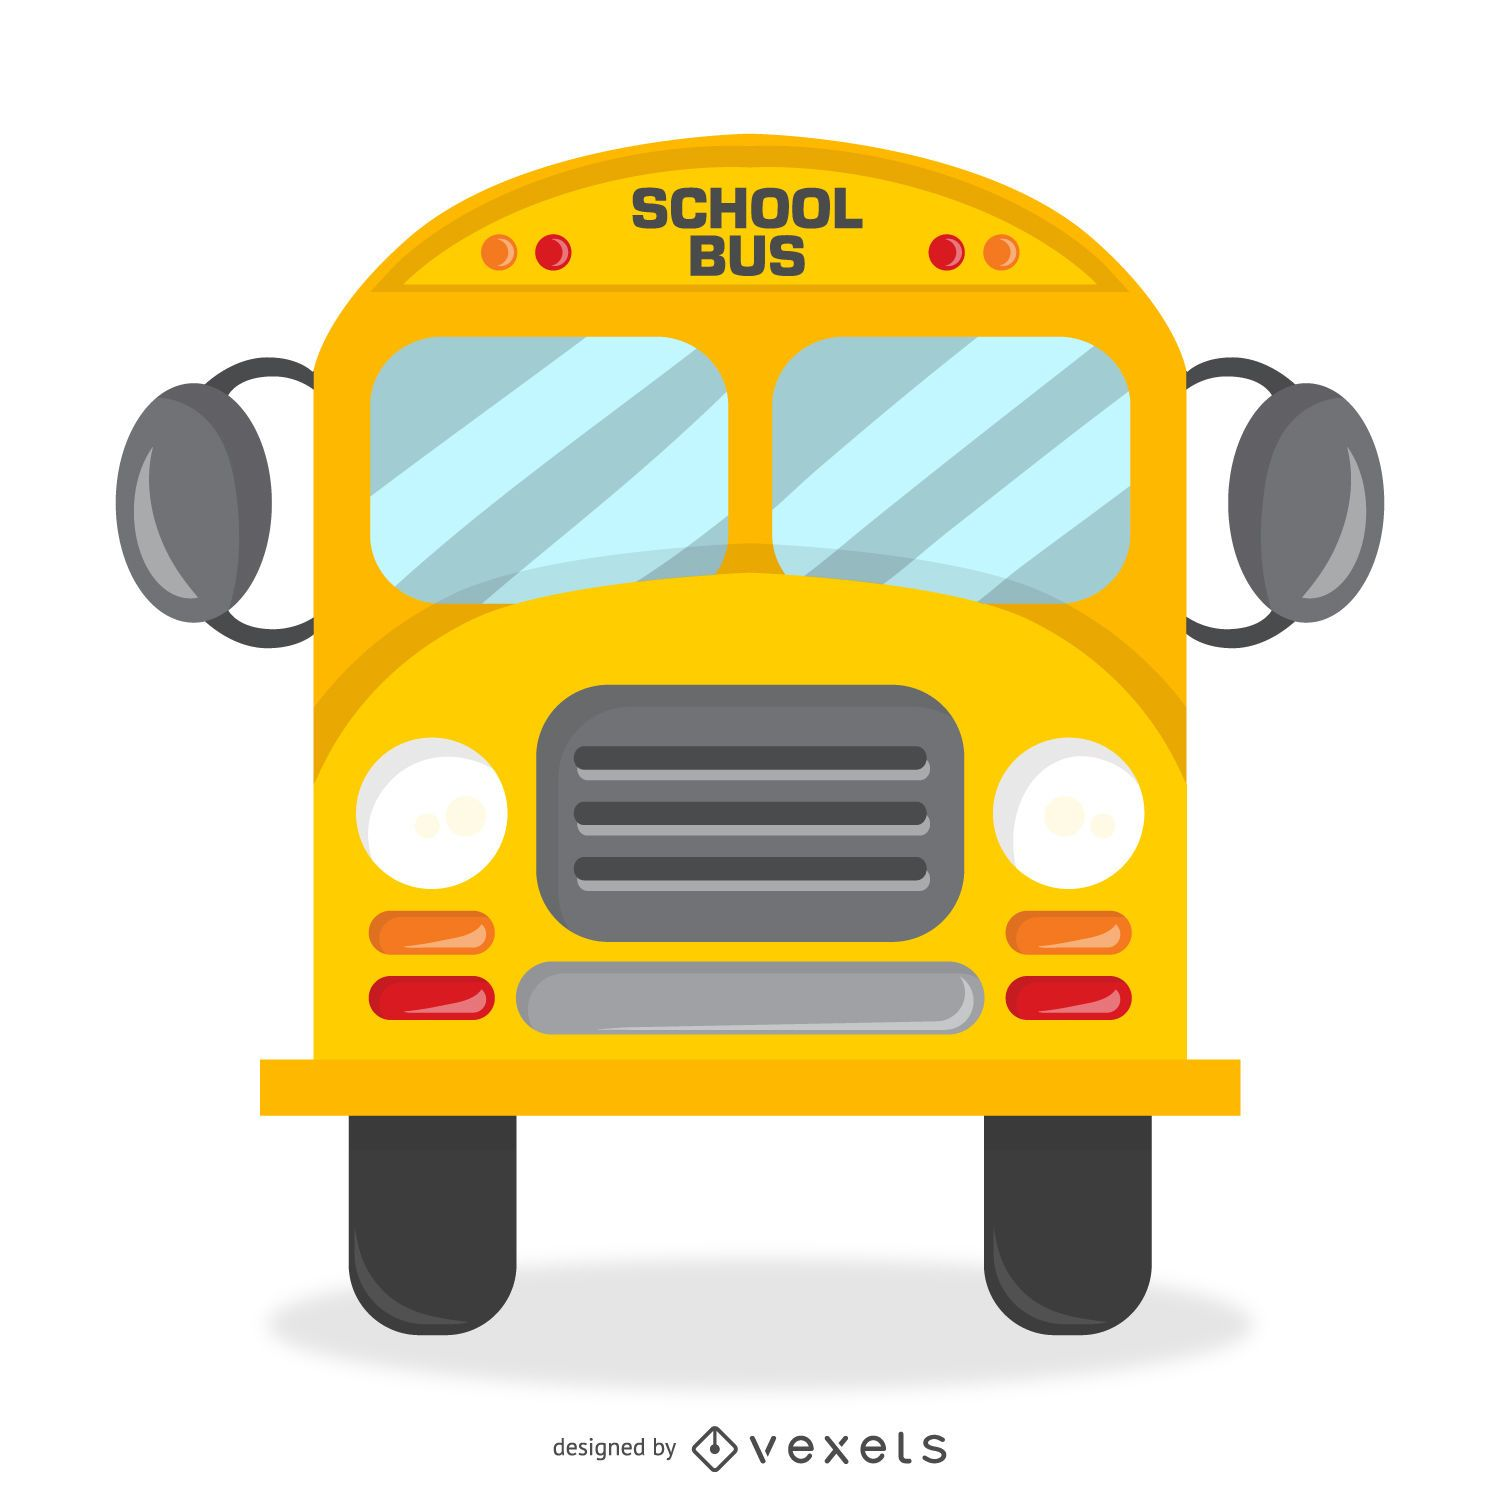 Isolated school bus design with details